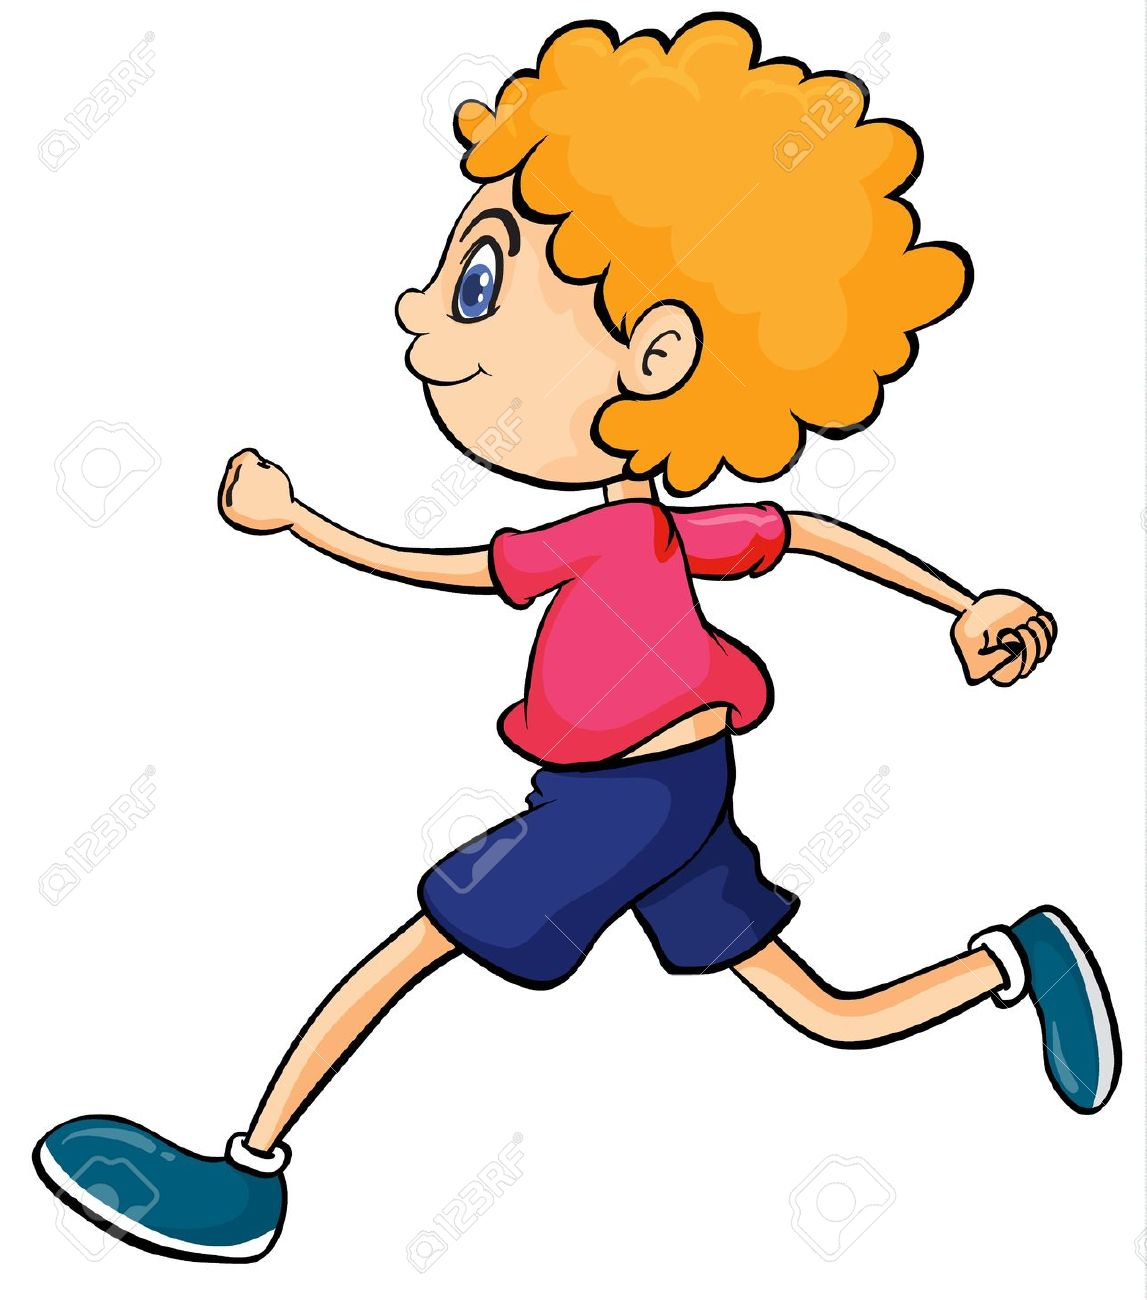 run clipart 20 free cliparts  download images on